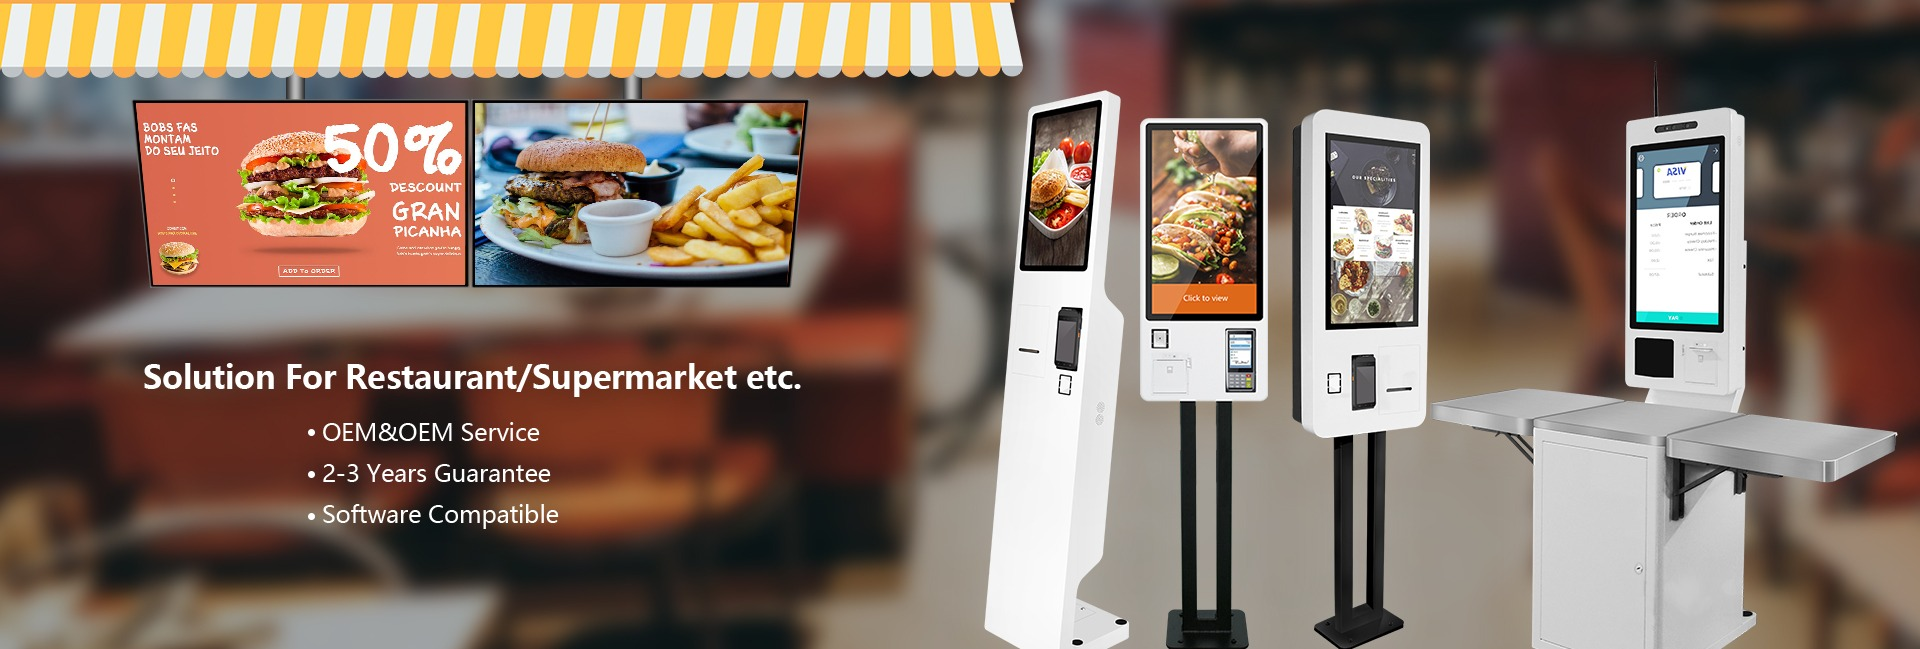 food on the table app Digital Screens and self order kiosk